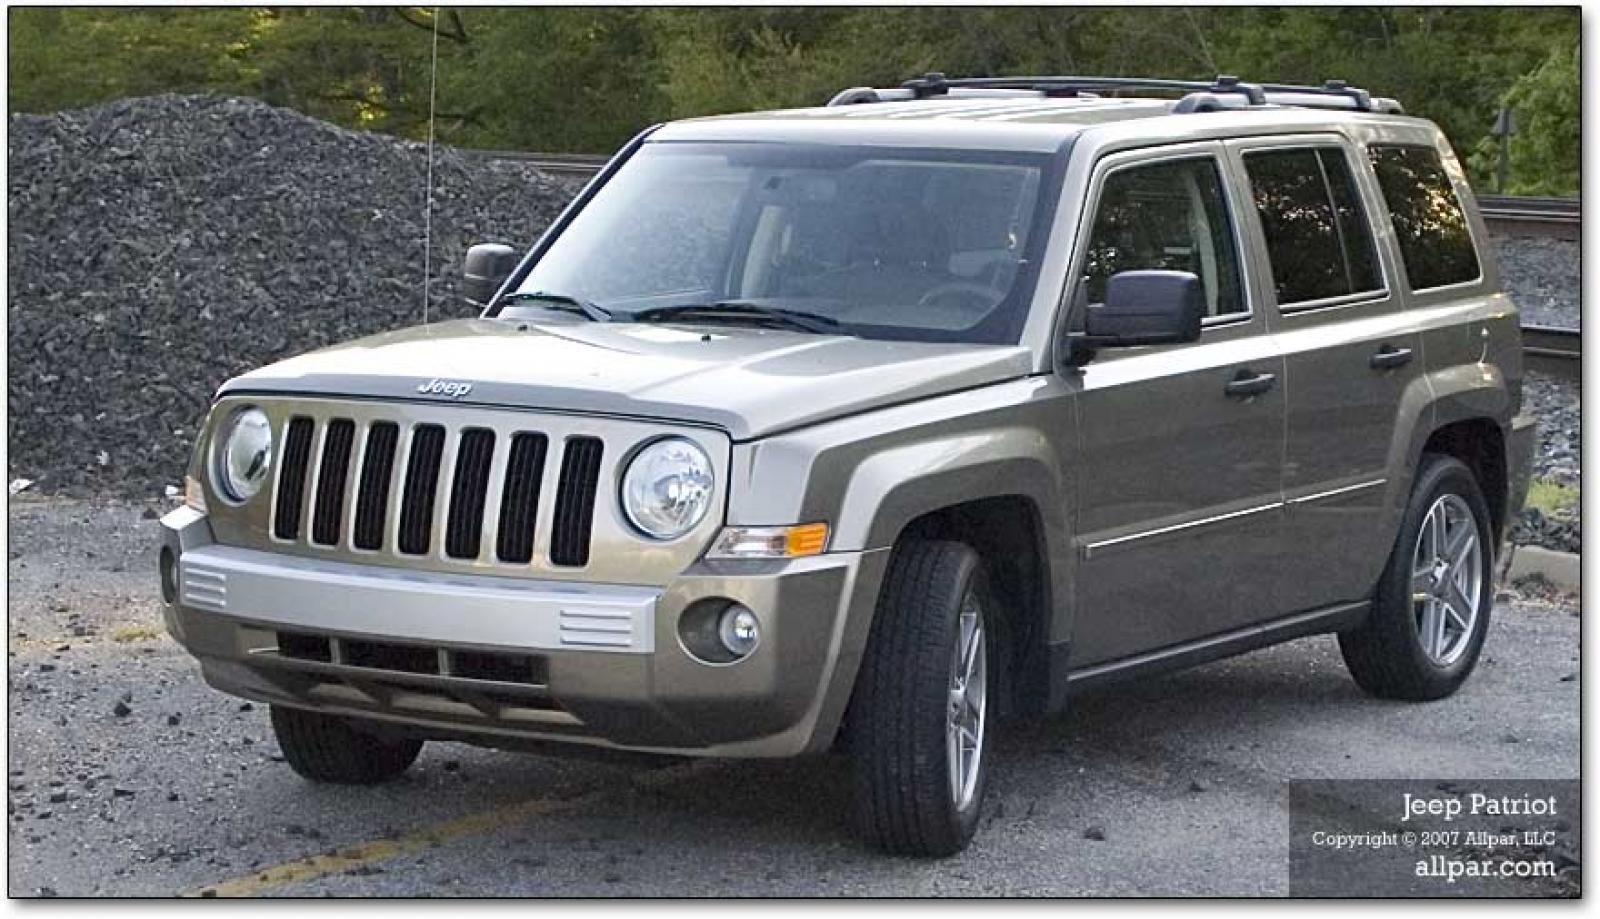 2008 Jeep Patriot - Information And Photos